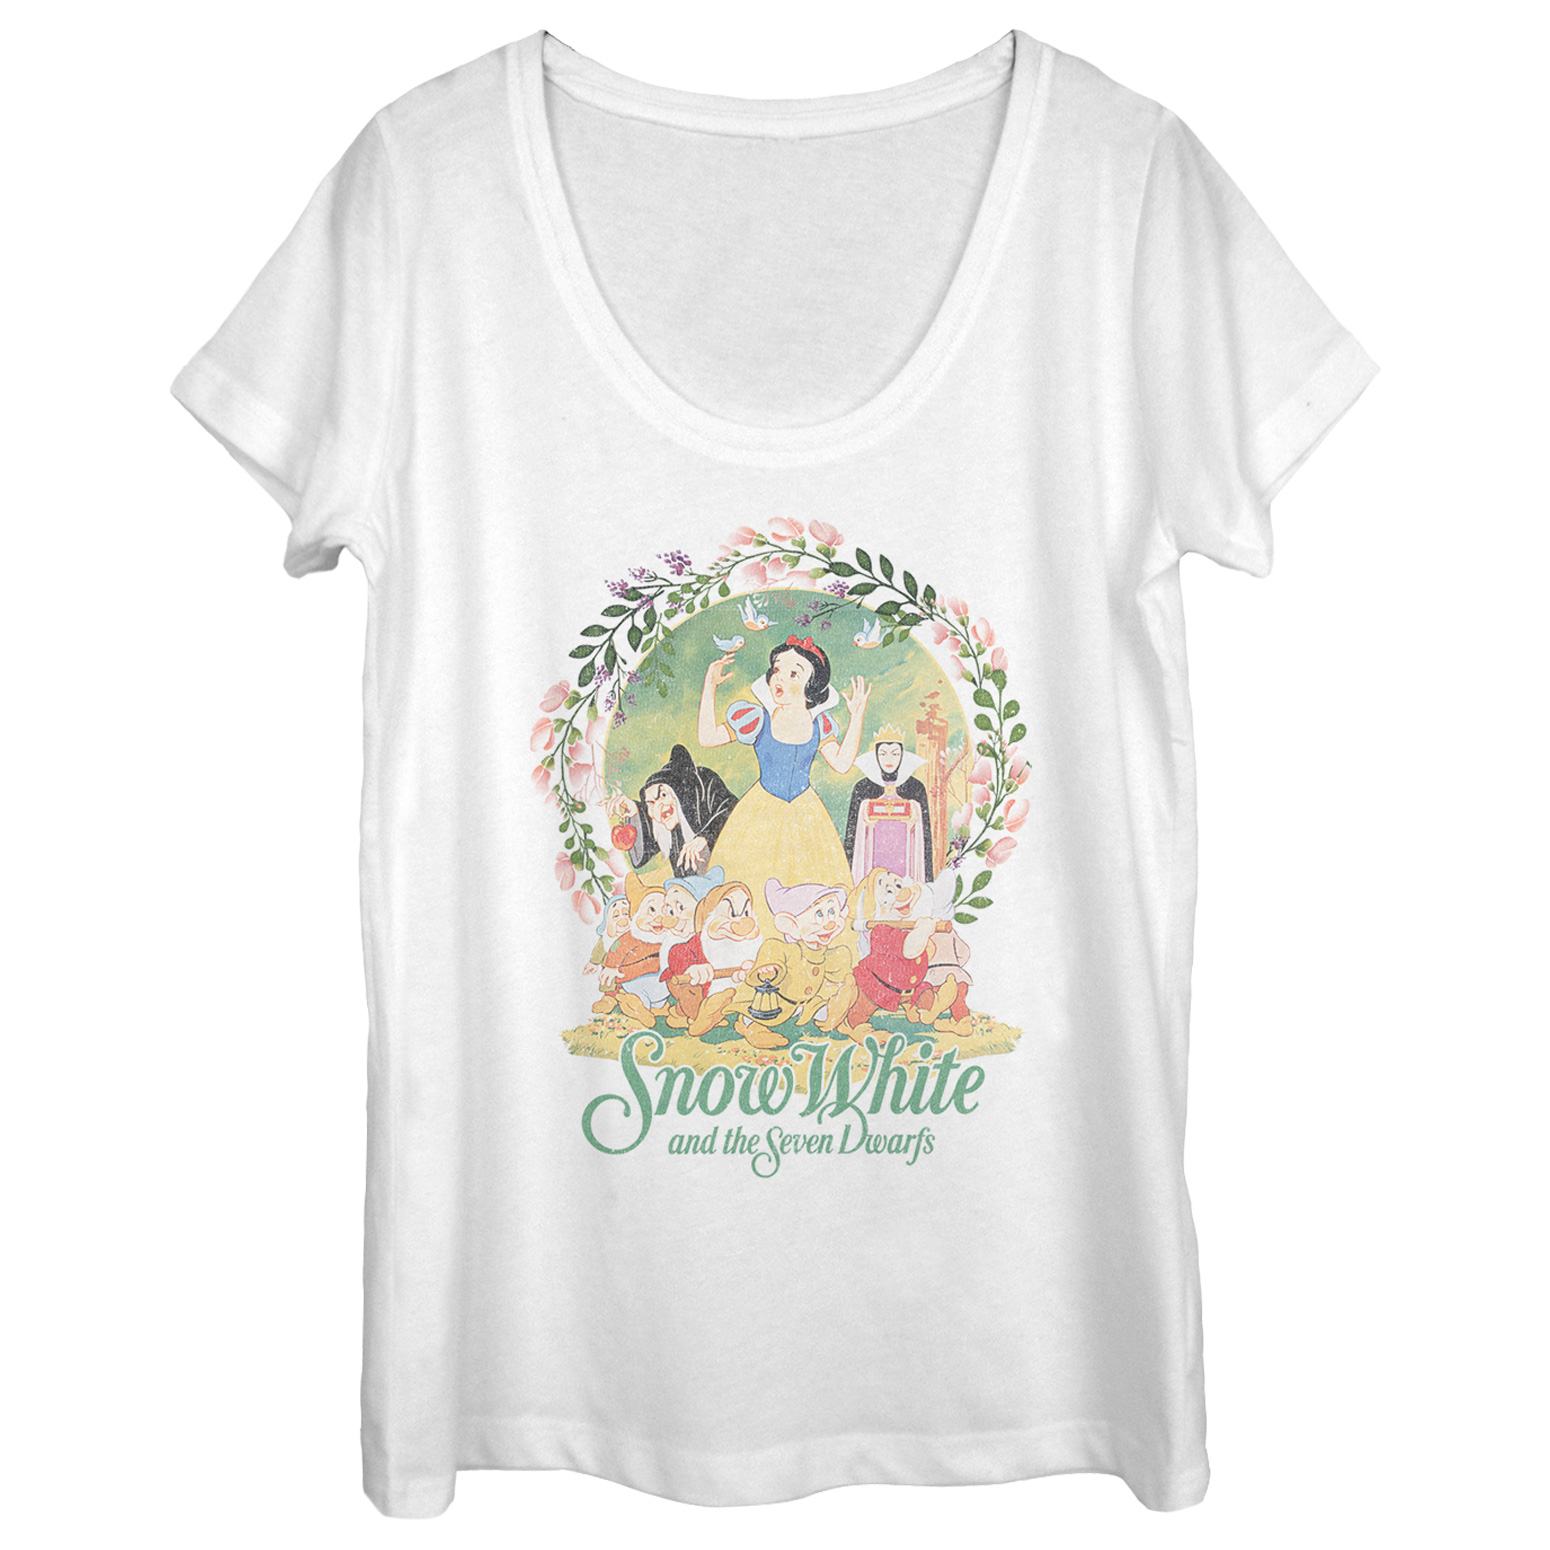 Snow White and the Seven Dwarves Women's Wreath Scoop Neck T-Shirt